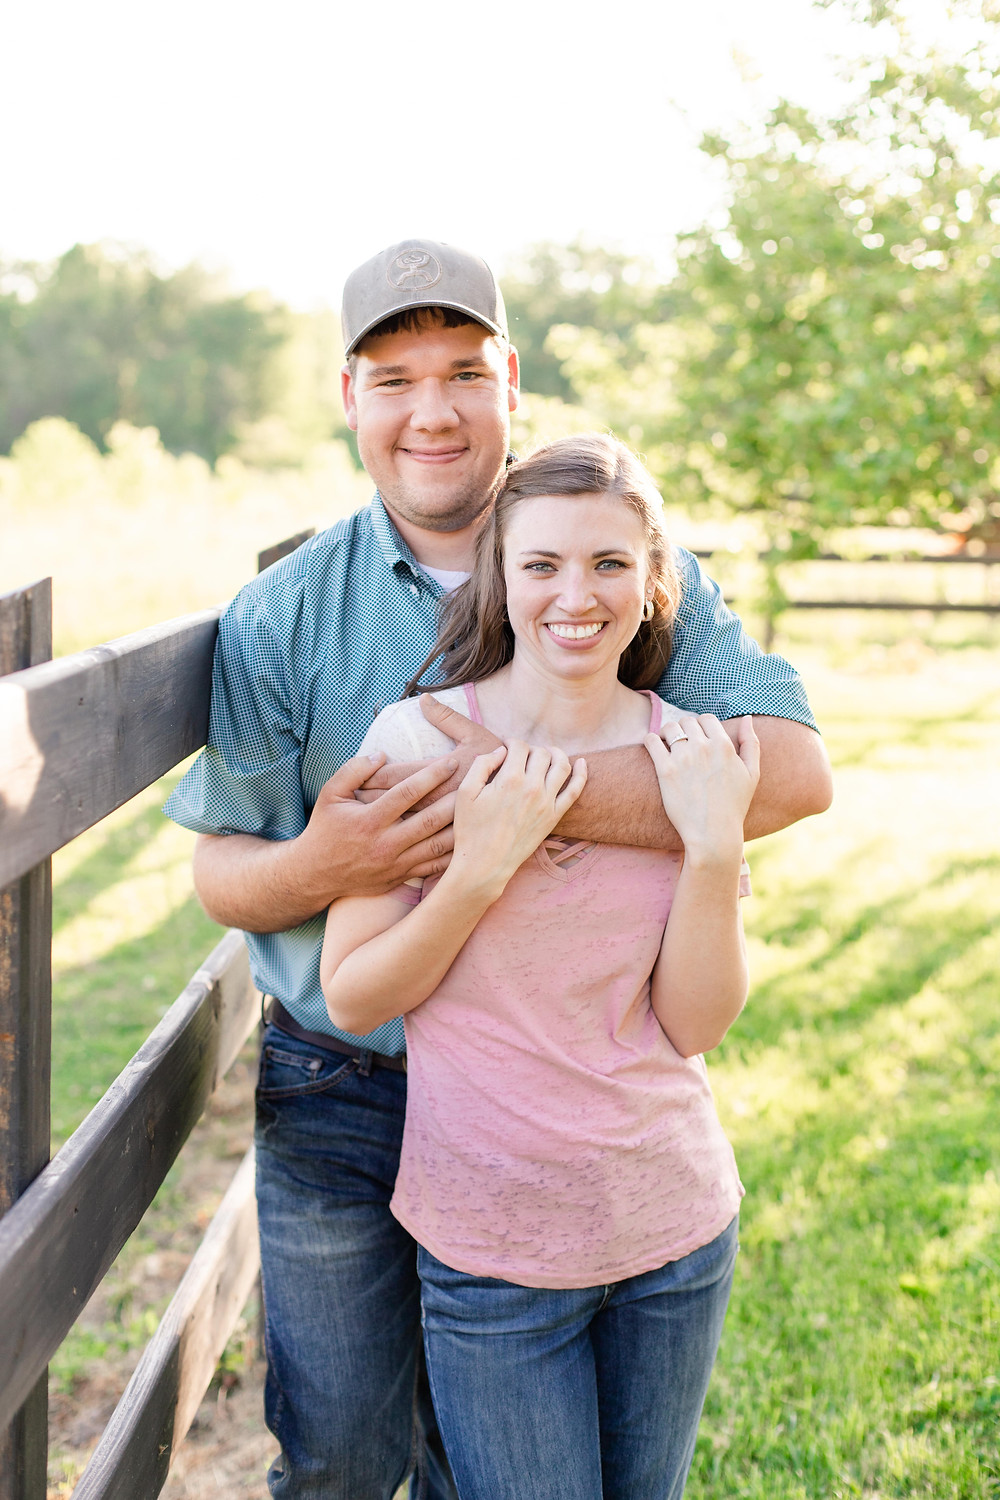 engaged couple hugging by fence line Something Blue Berry Farm Wedding Venue